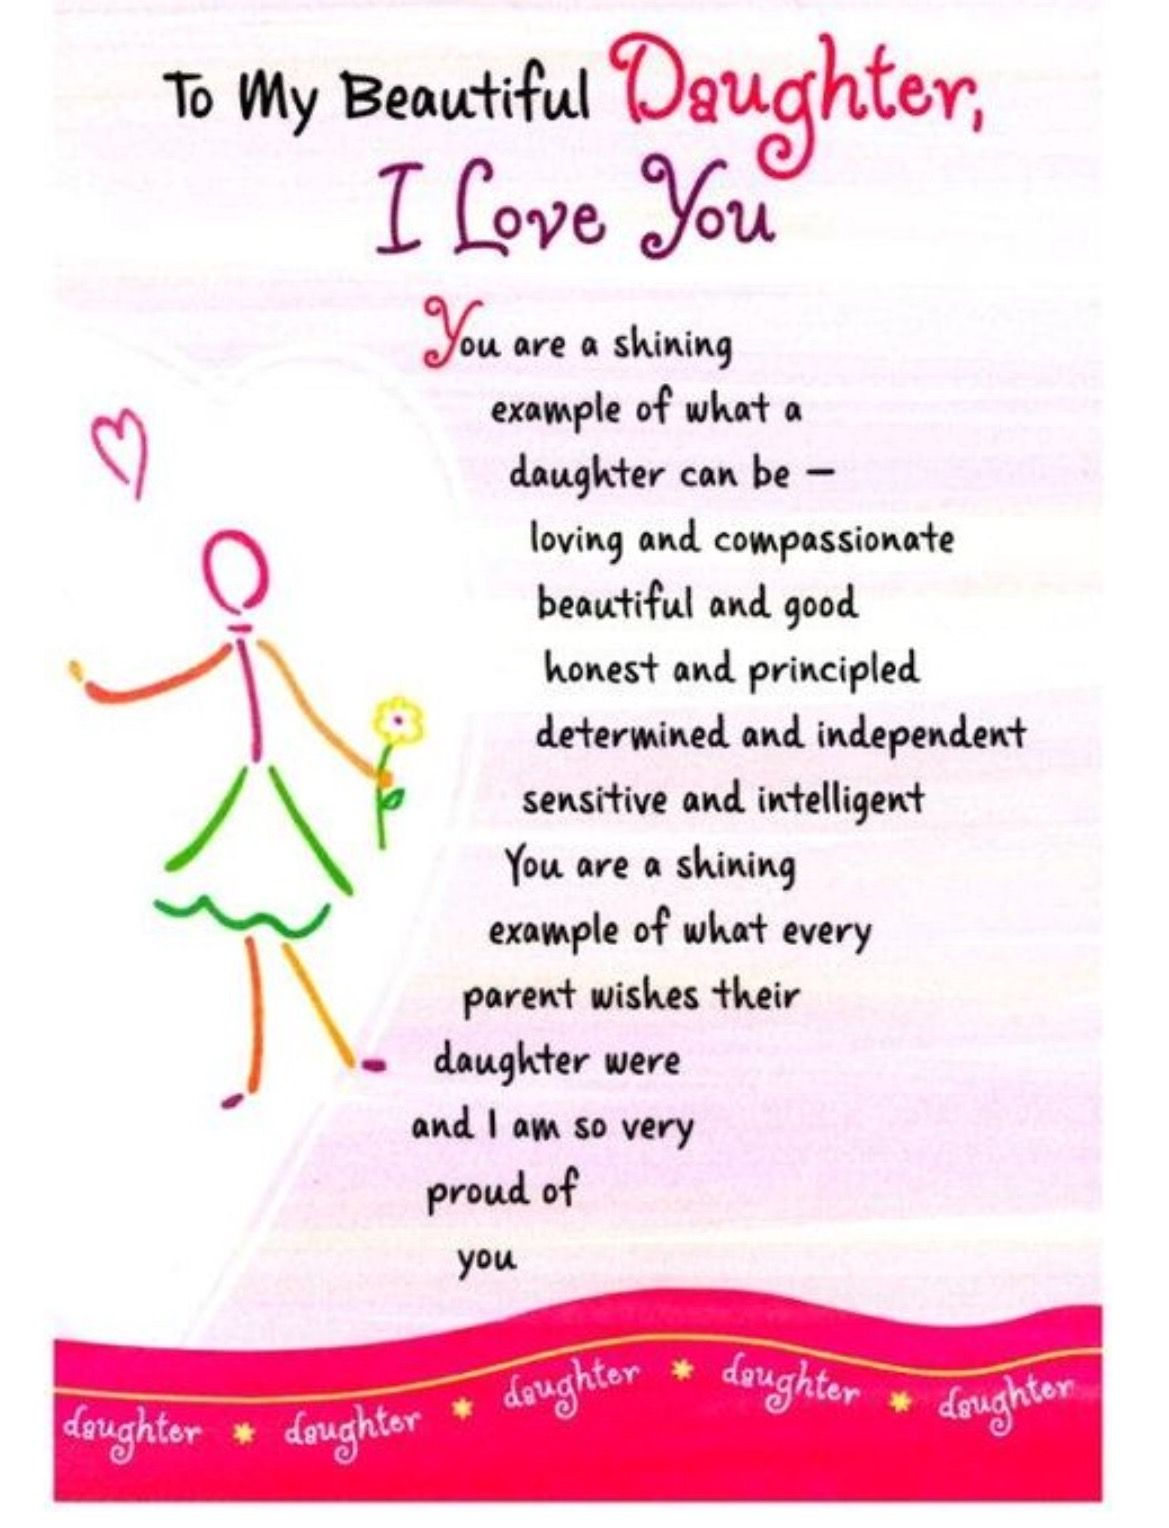 Pin by Sandy Alcus on Daughters (With images) Daughter